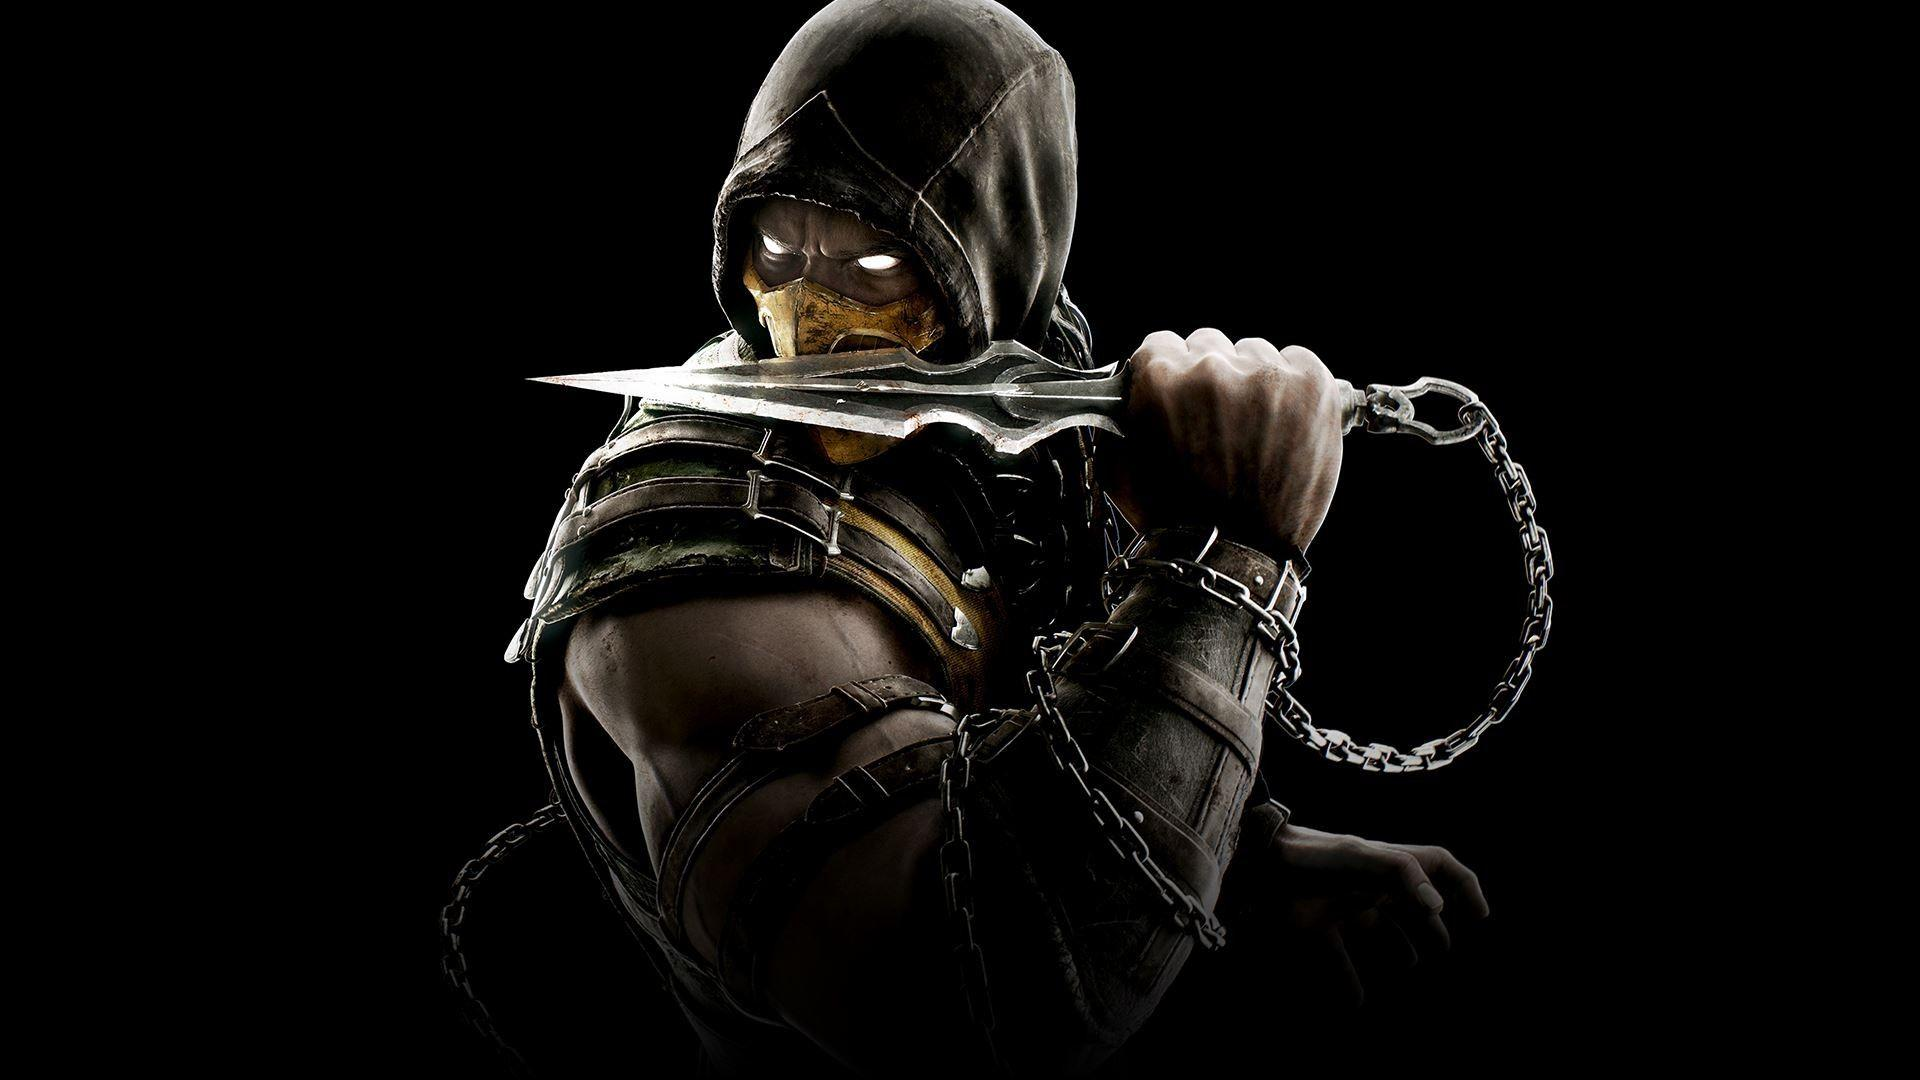 540x960 Scorpion Mortal Kombat 540x960 Resolution HD 4k Wallpapers